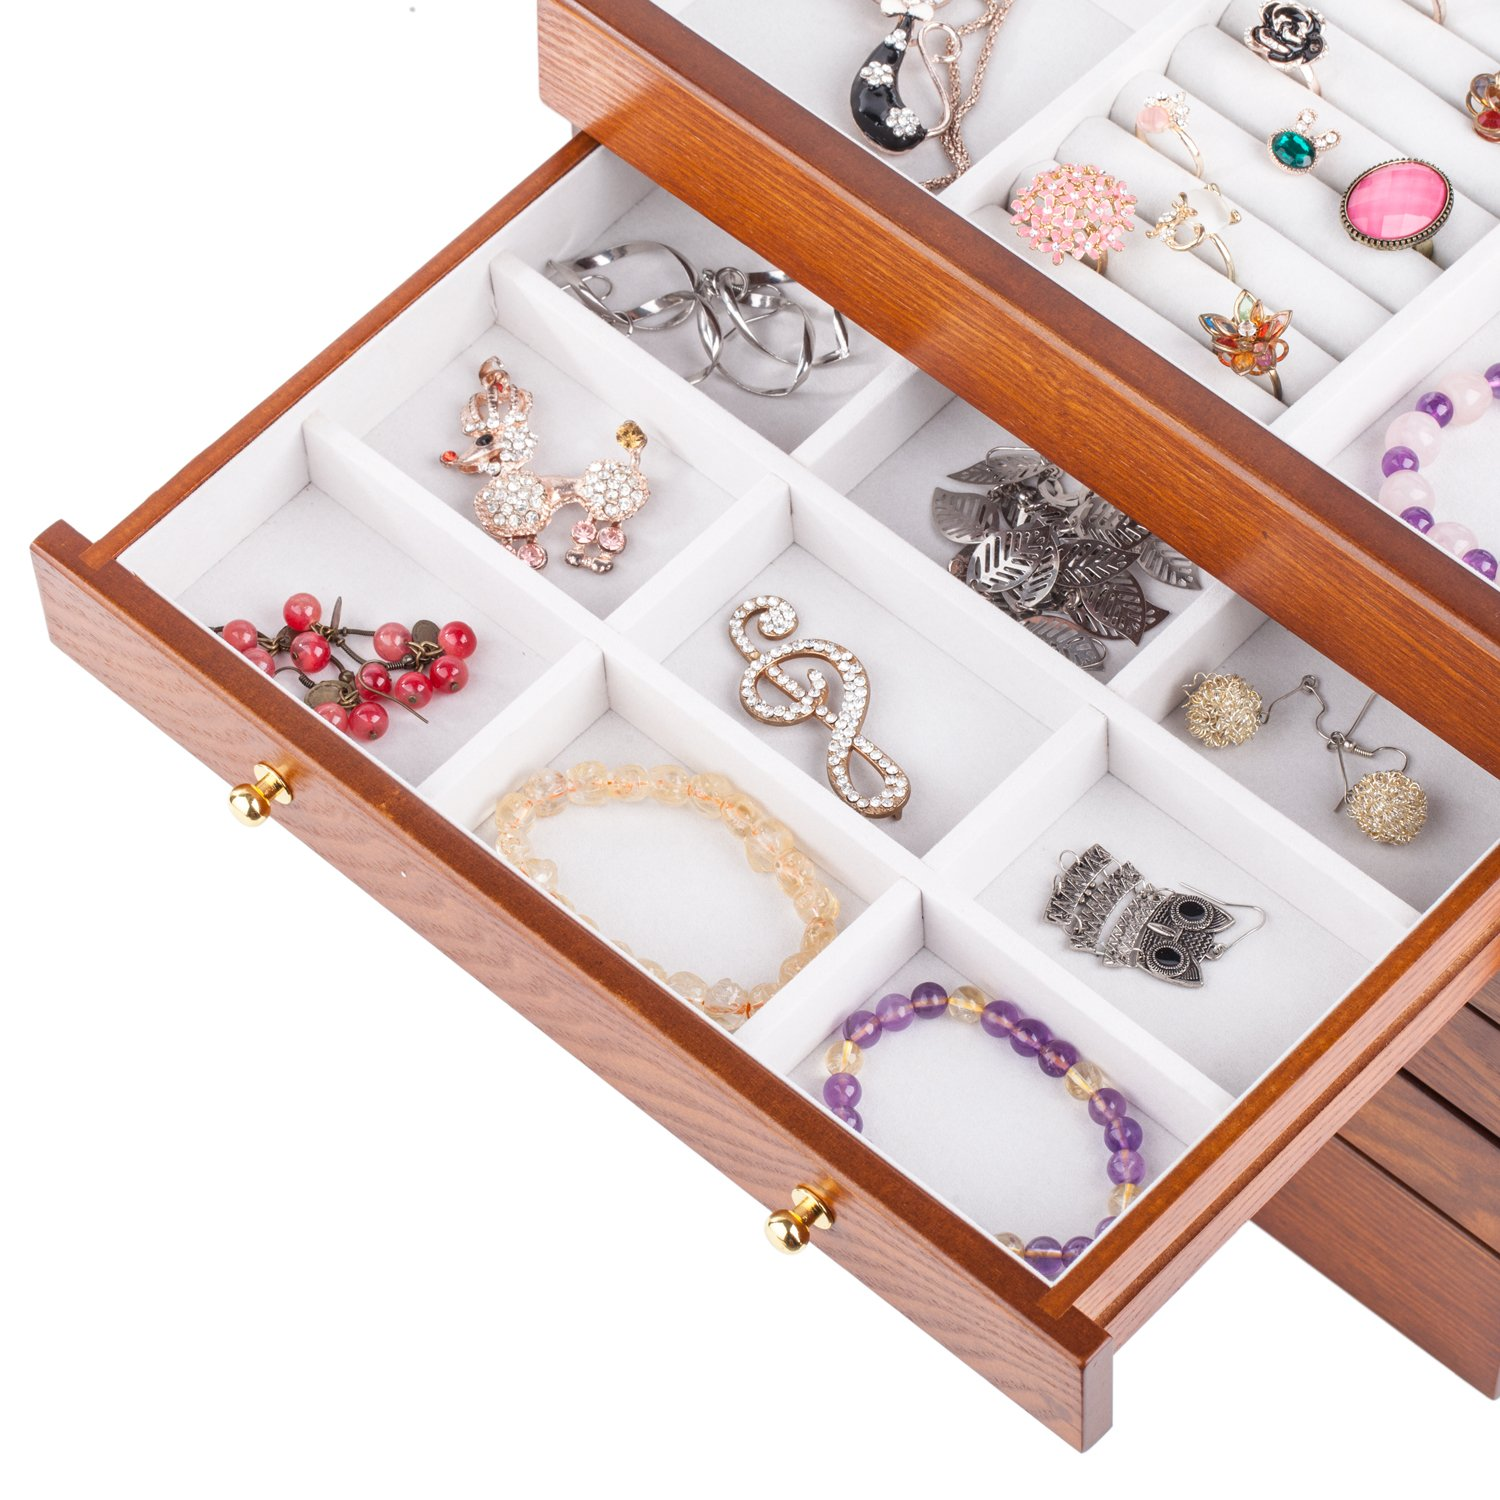 Rowling Extra Large Wooden Jewelry Box/Jewelry Armoire Ring Necklacel Gift Storage Box Organizer by Rowling (Image #5)